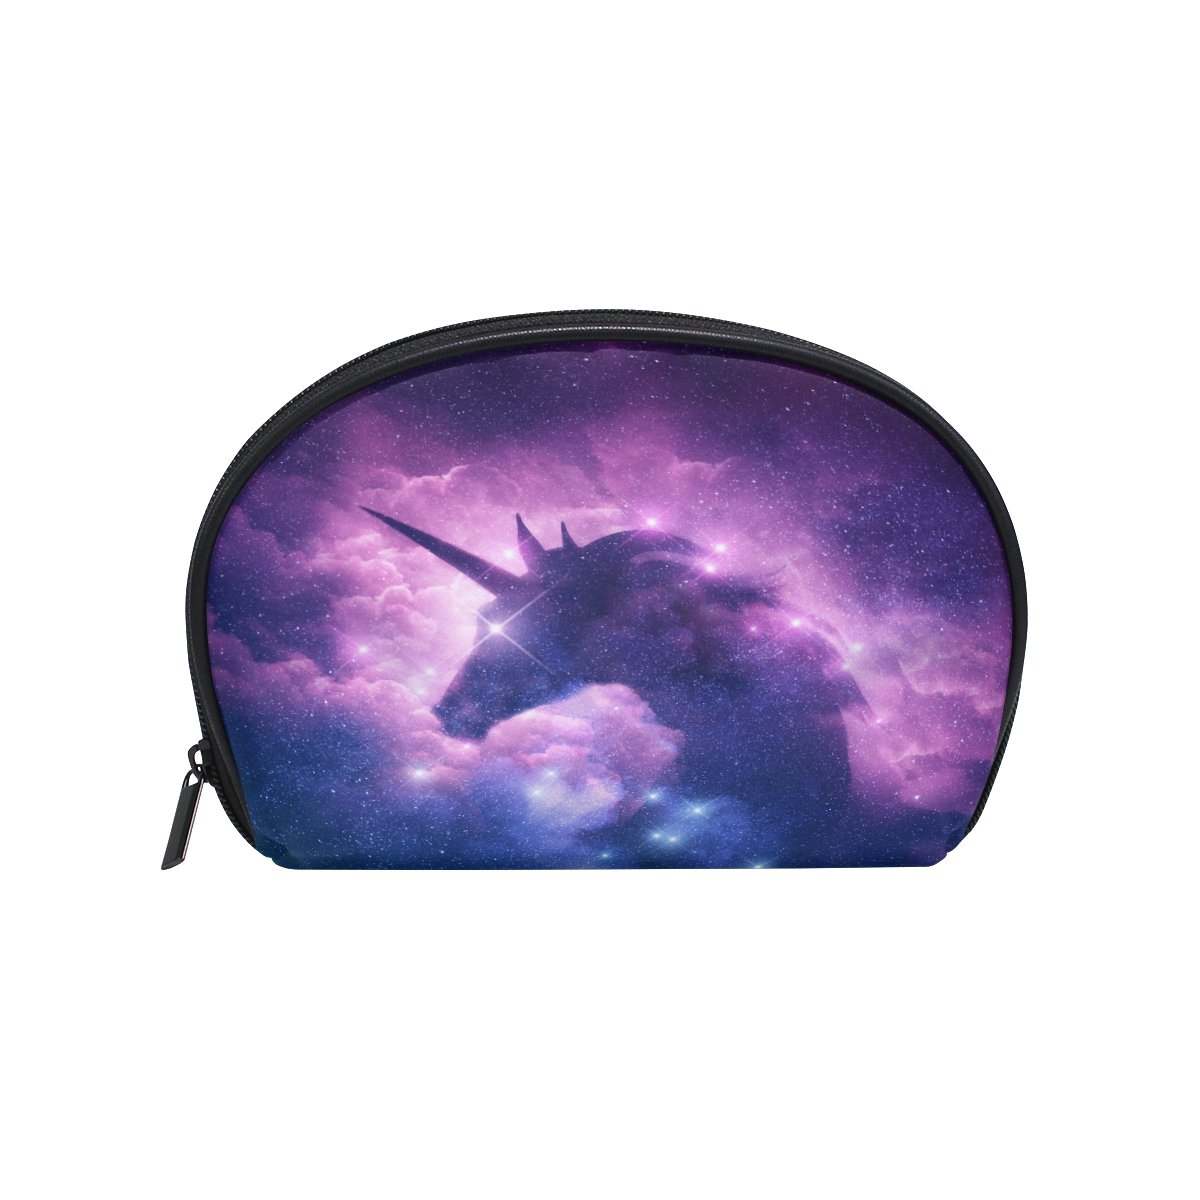 ALAZA Galaxy Nebula Unicorn Half Moon Cosmetic Makeup Toiletry Bag Pouch Travel Handy Purse Organizer Bag for Women Girls